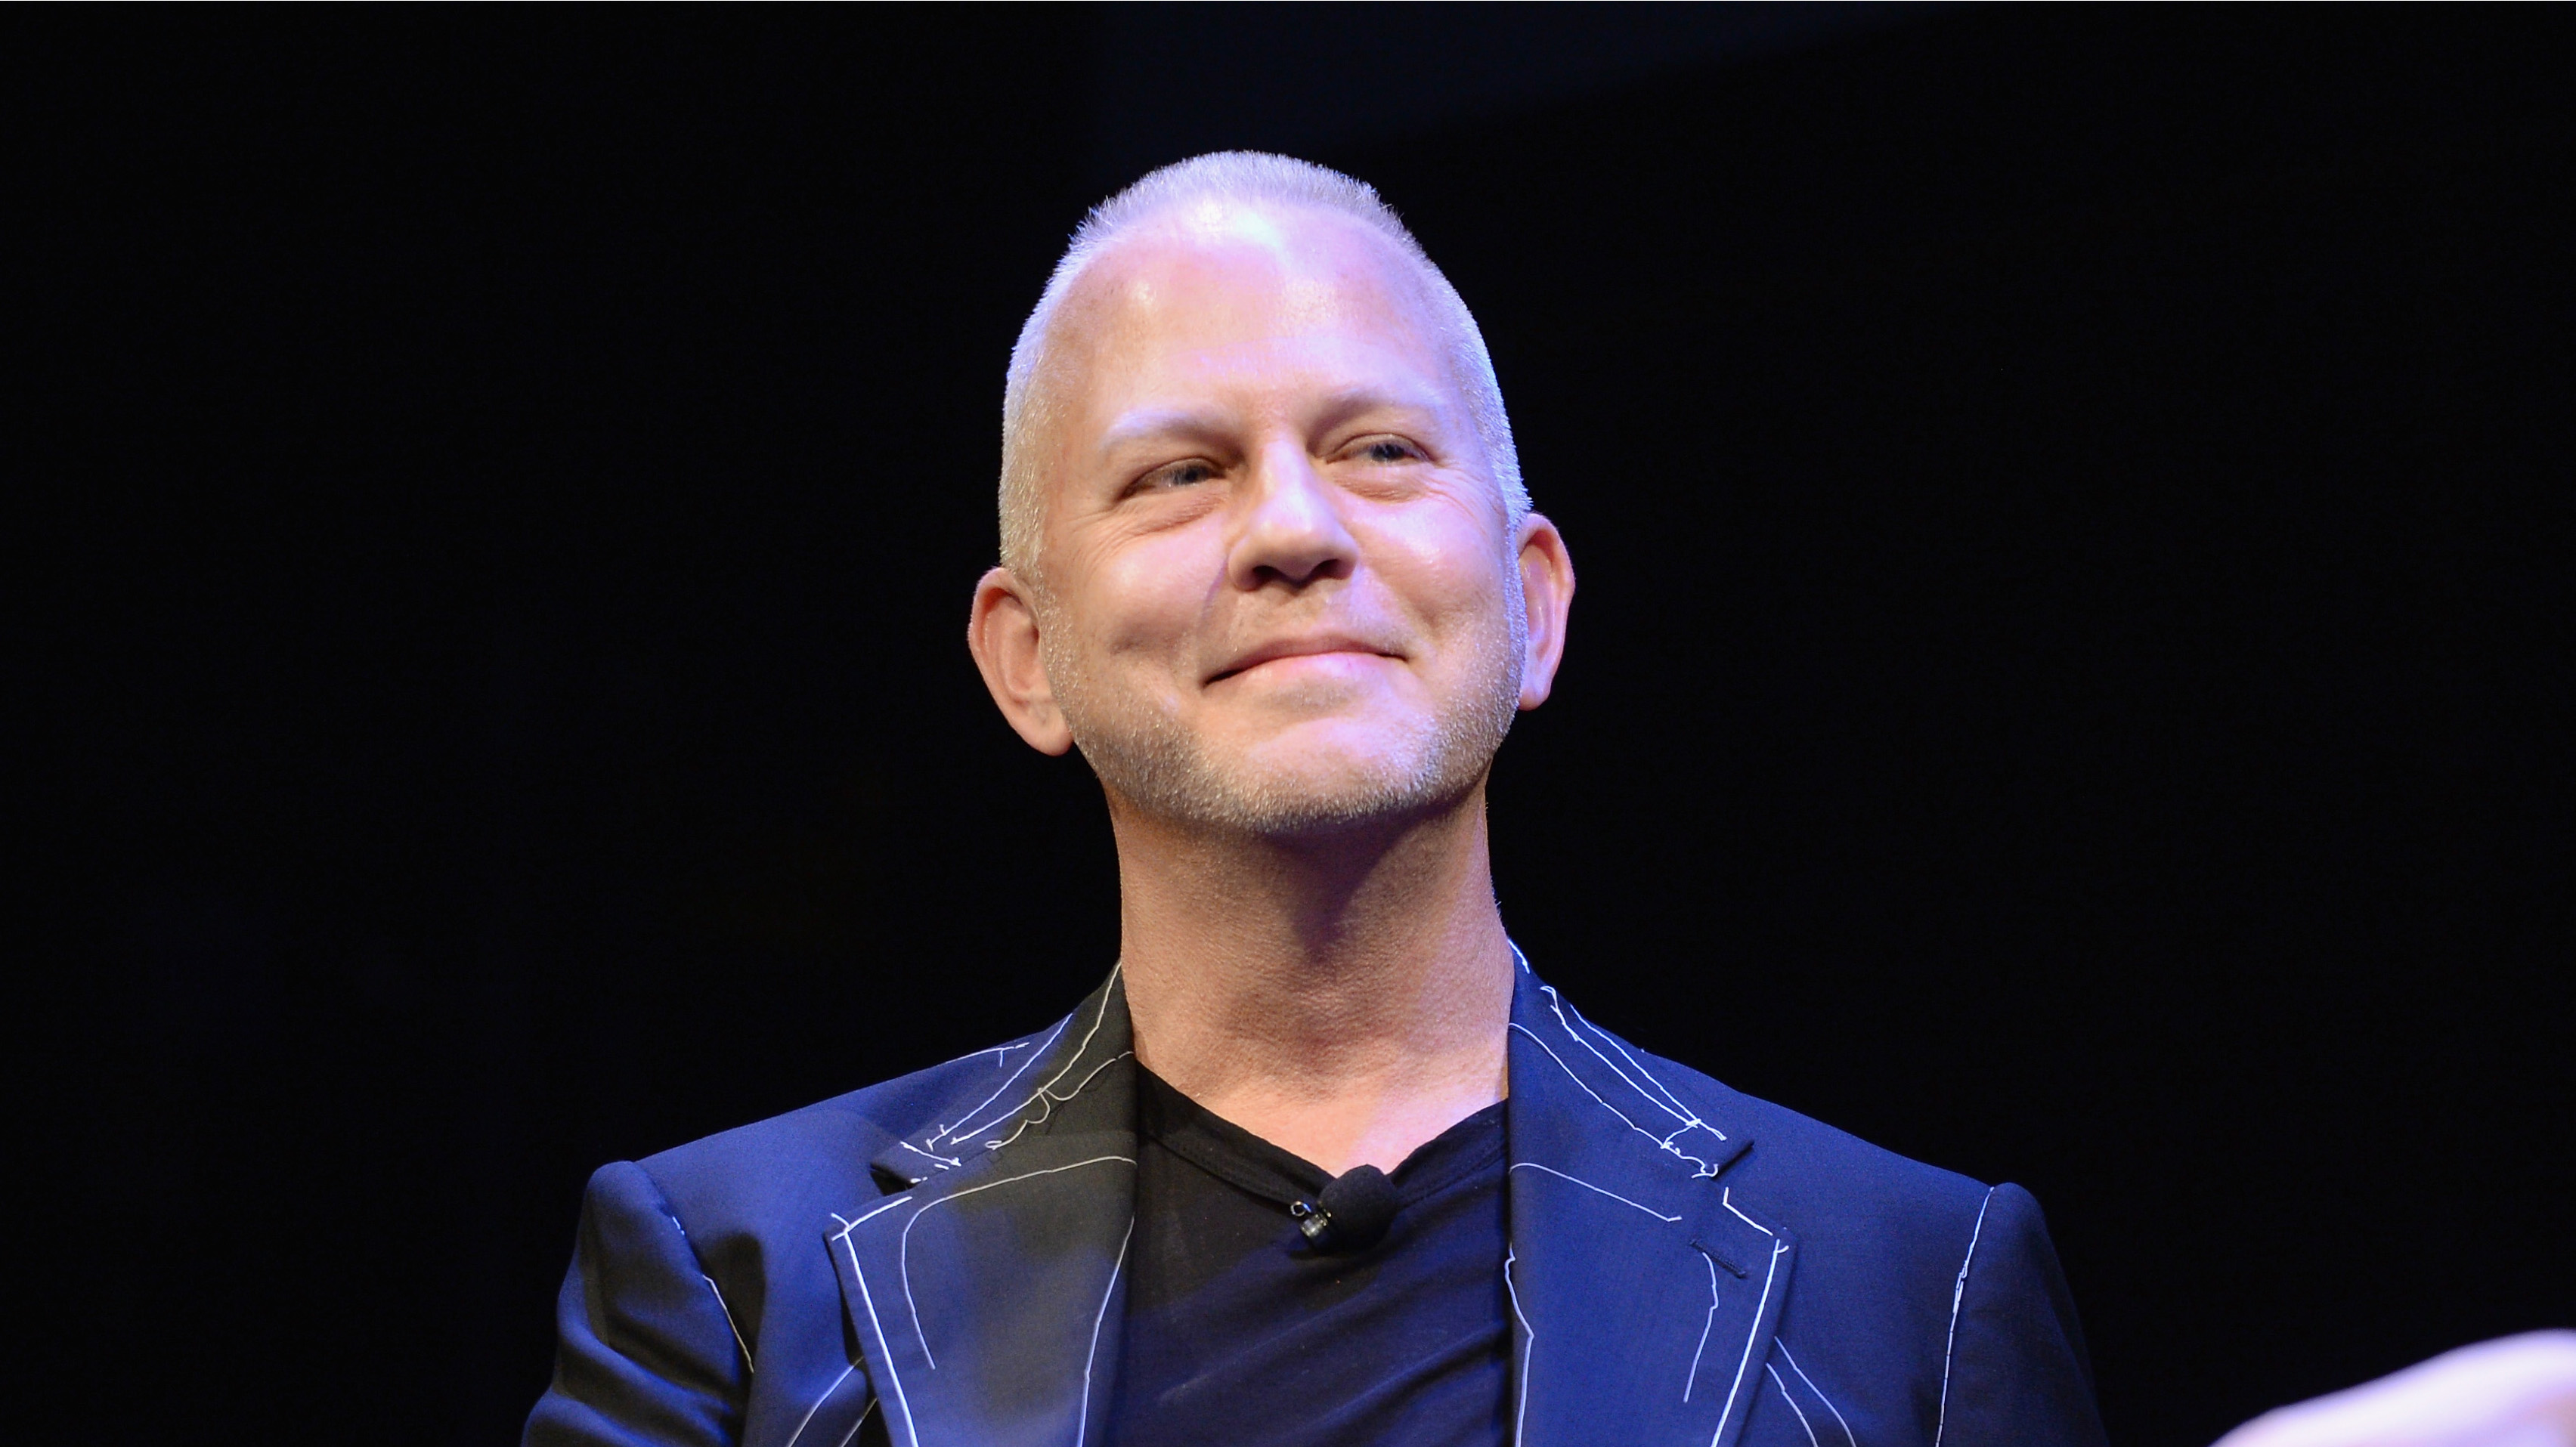 Spooked by the Pending Disney Deal, Ryan Murphy Leaves